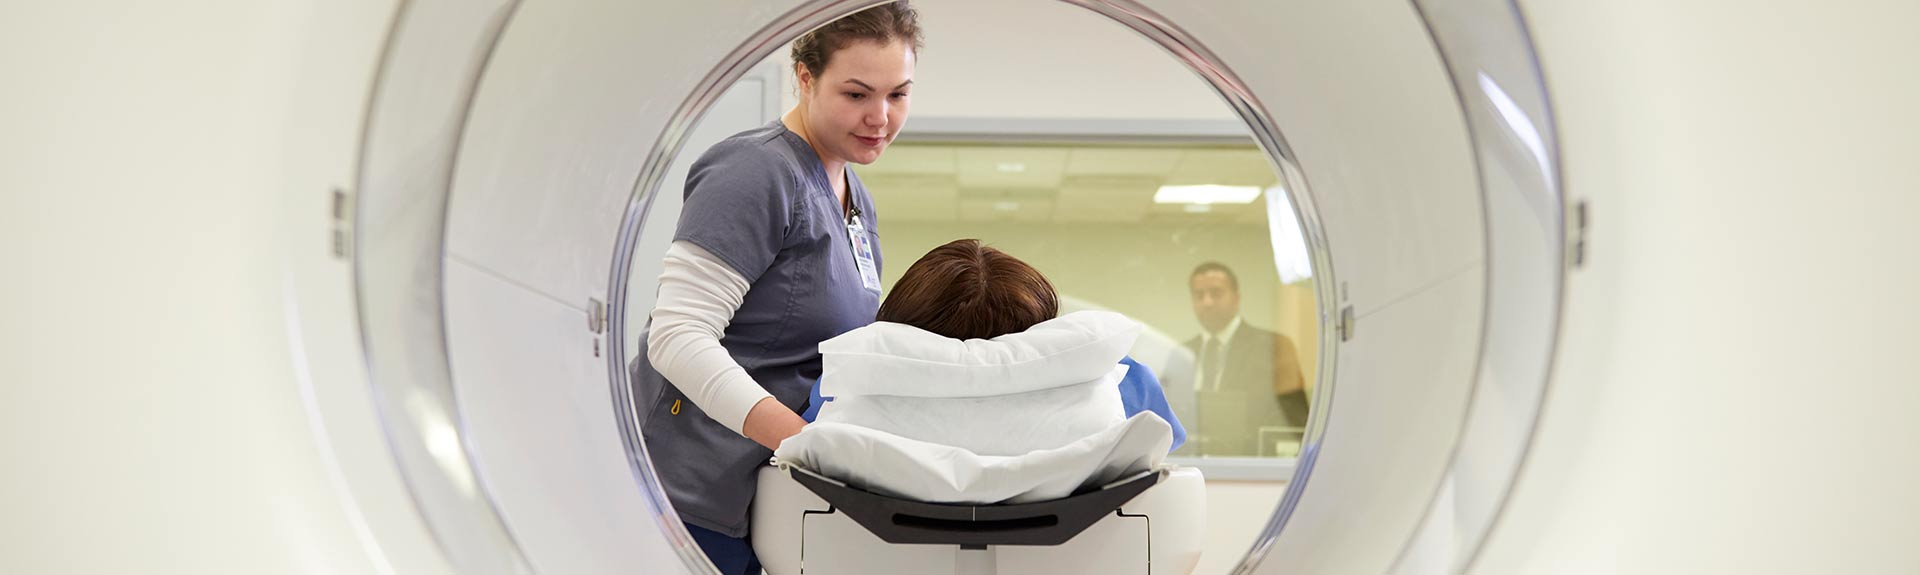 Patient in an imaging machine